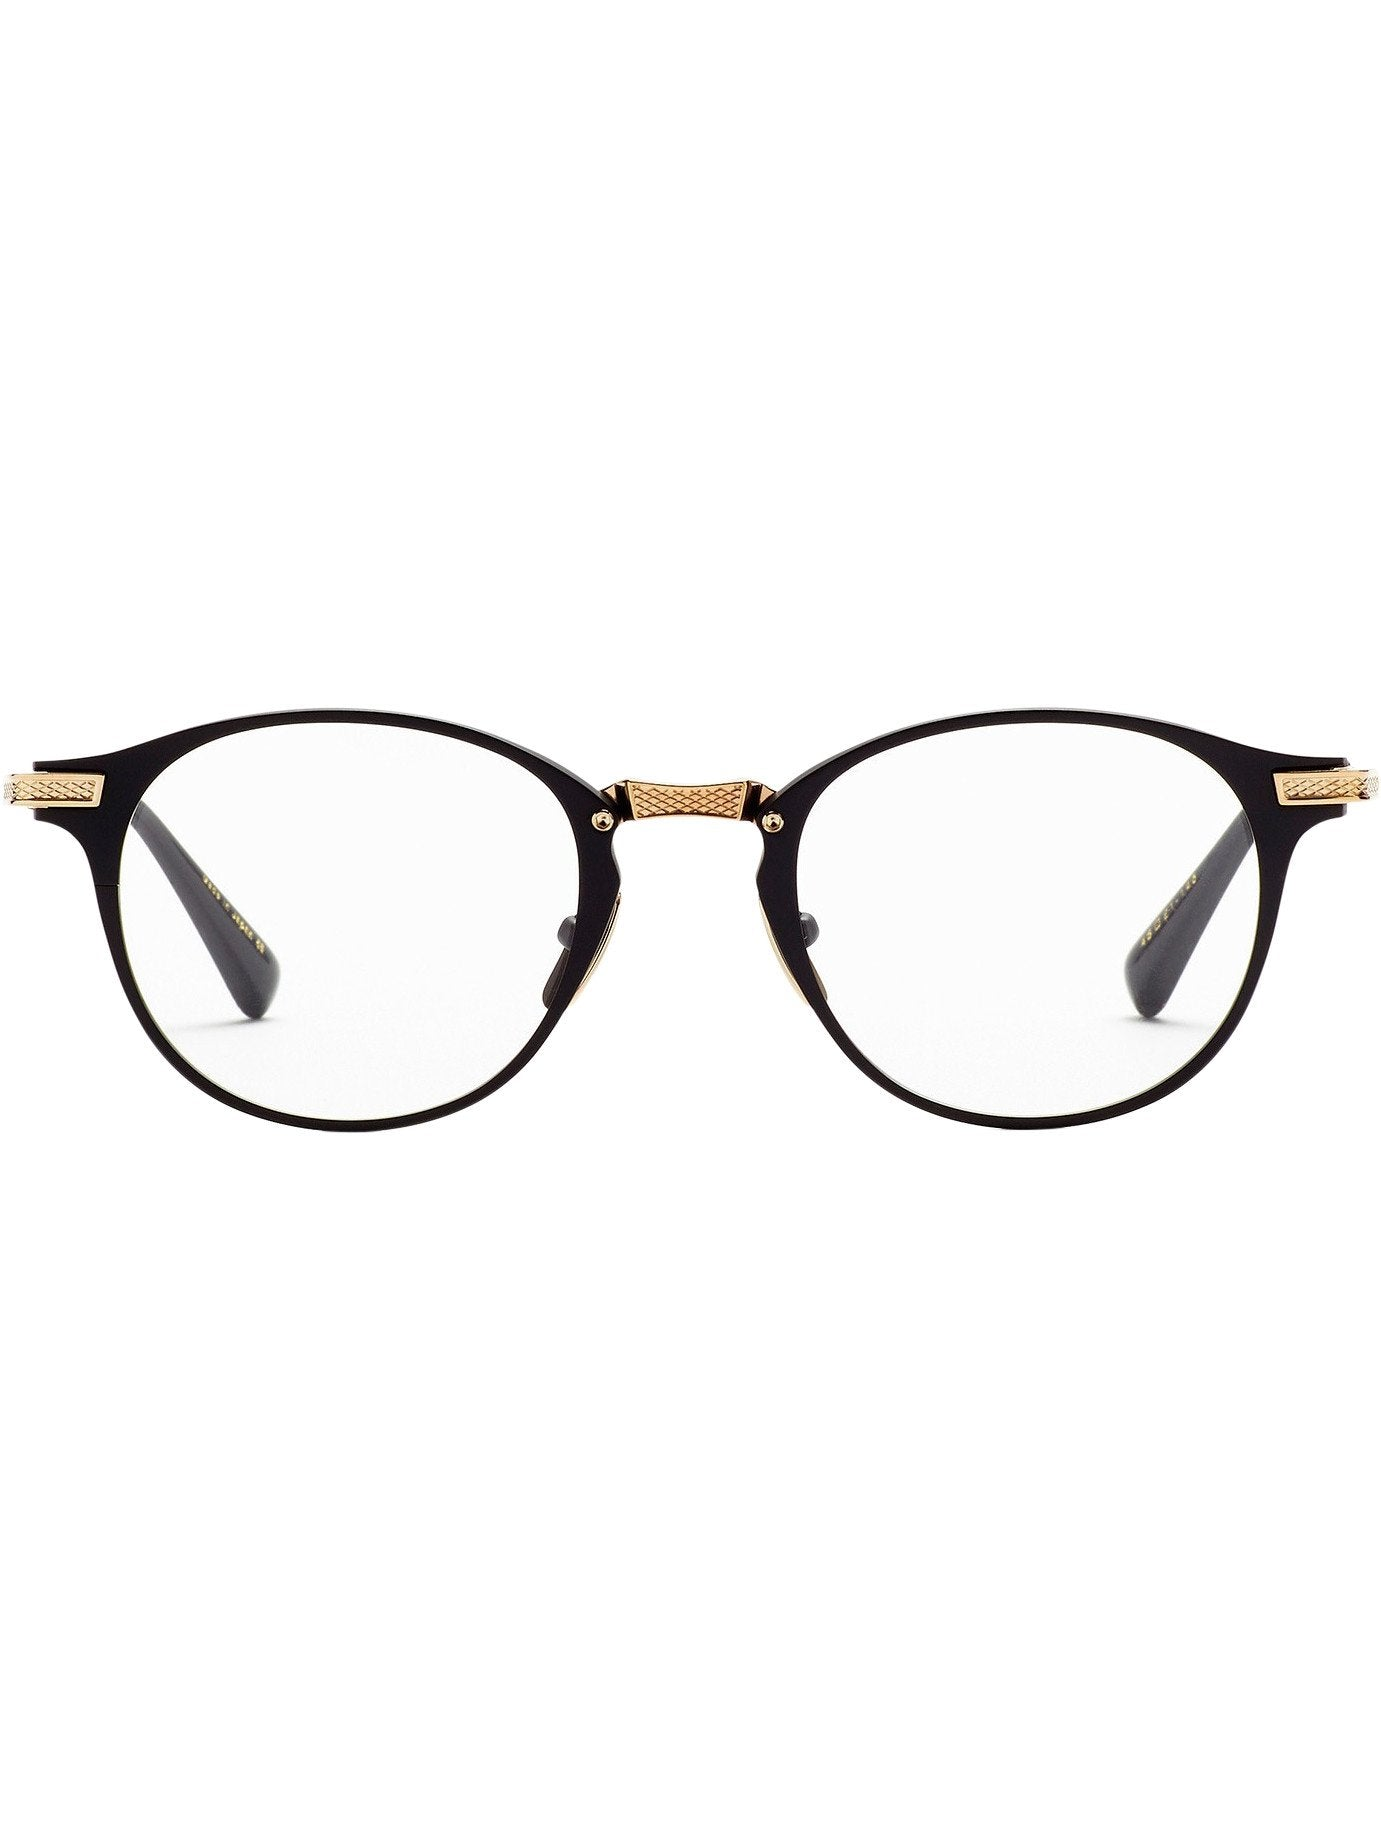 c4085e2064b Optical Frame - Dita United DRX-2078A Glasses